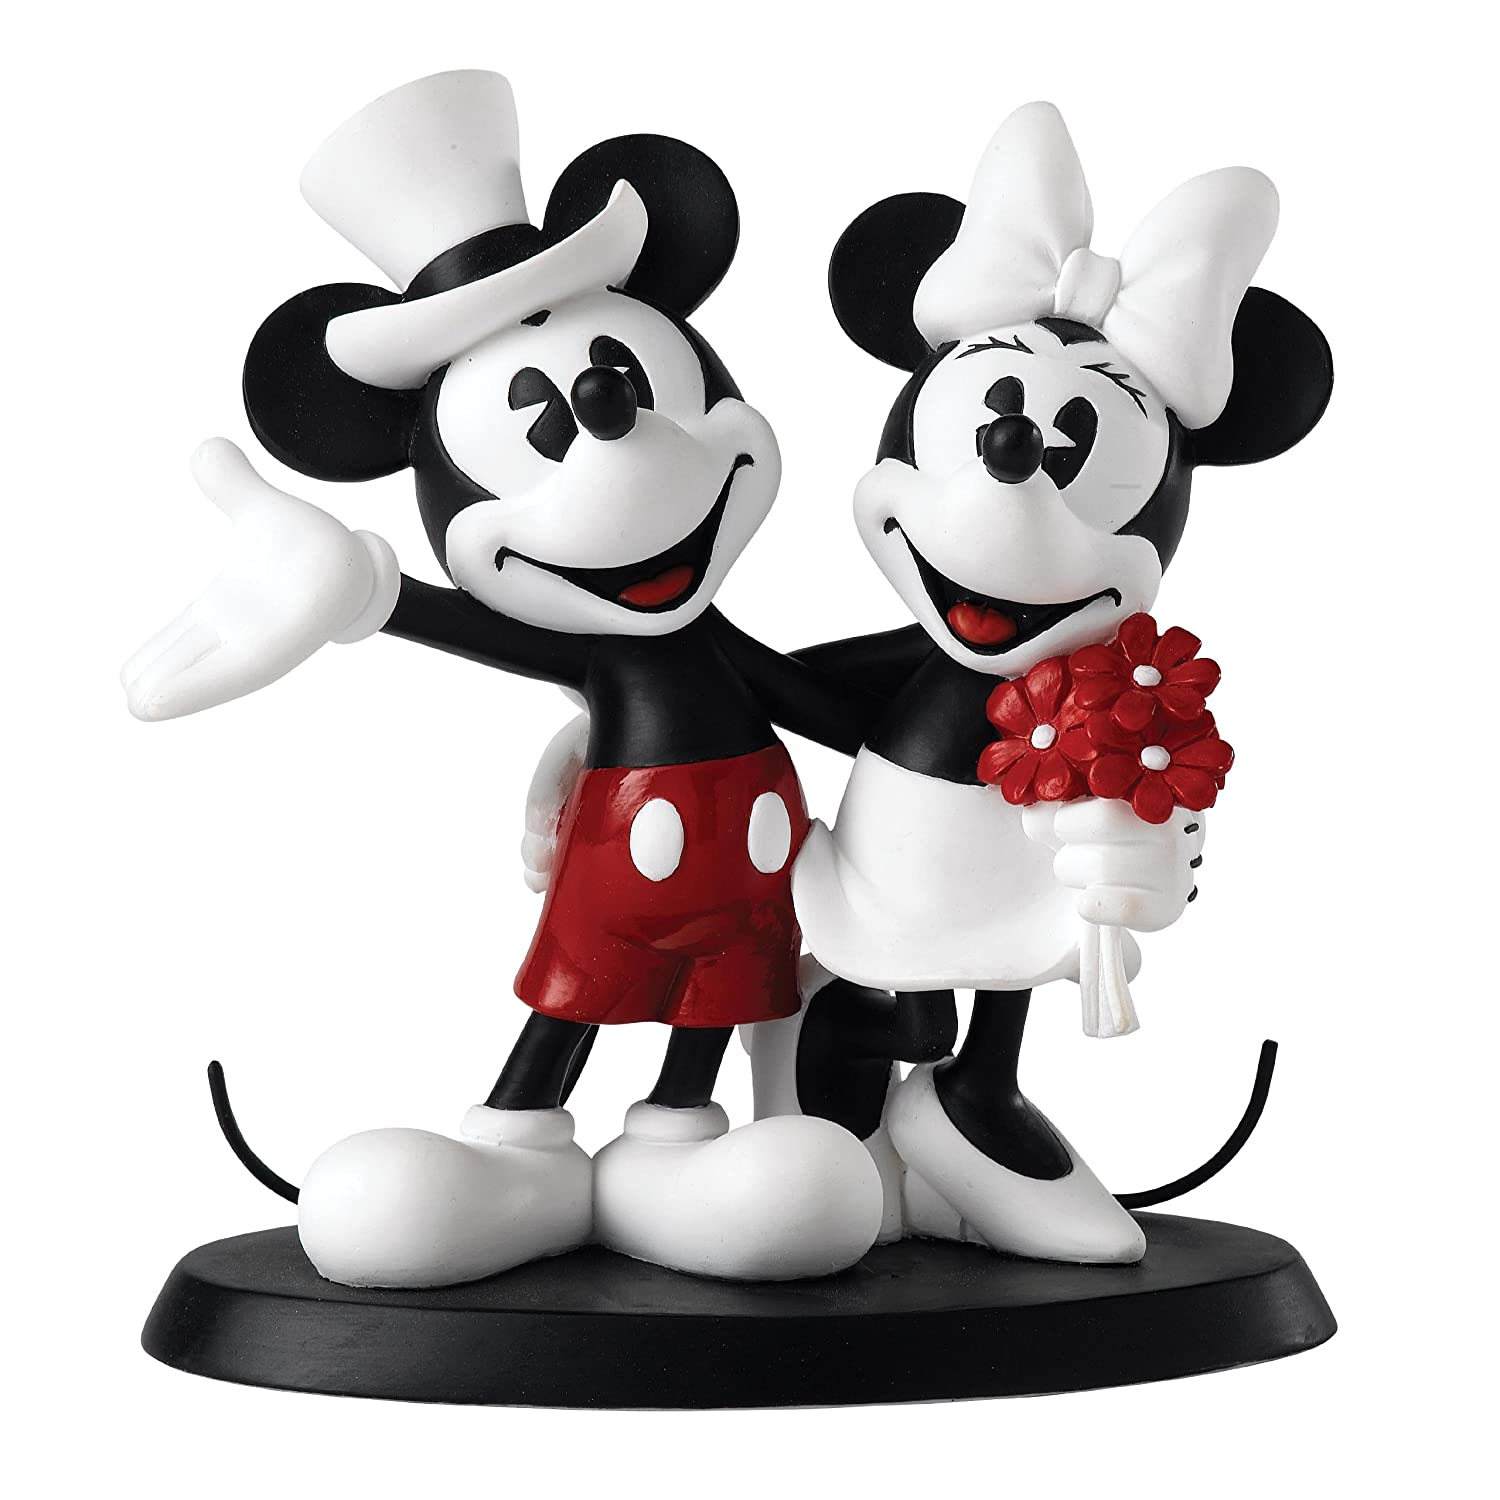 Disney Wedding Cake Topper Wedding Planning Discussion